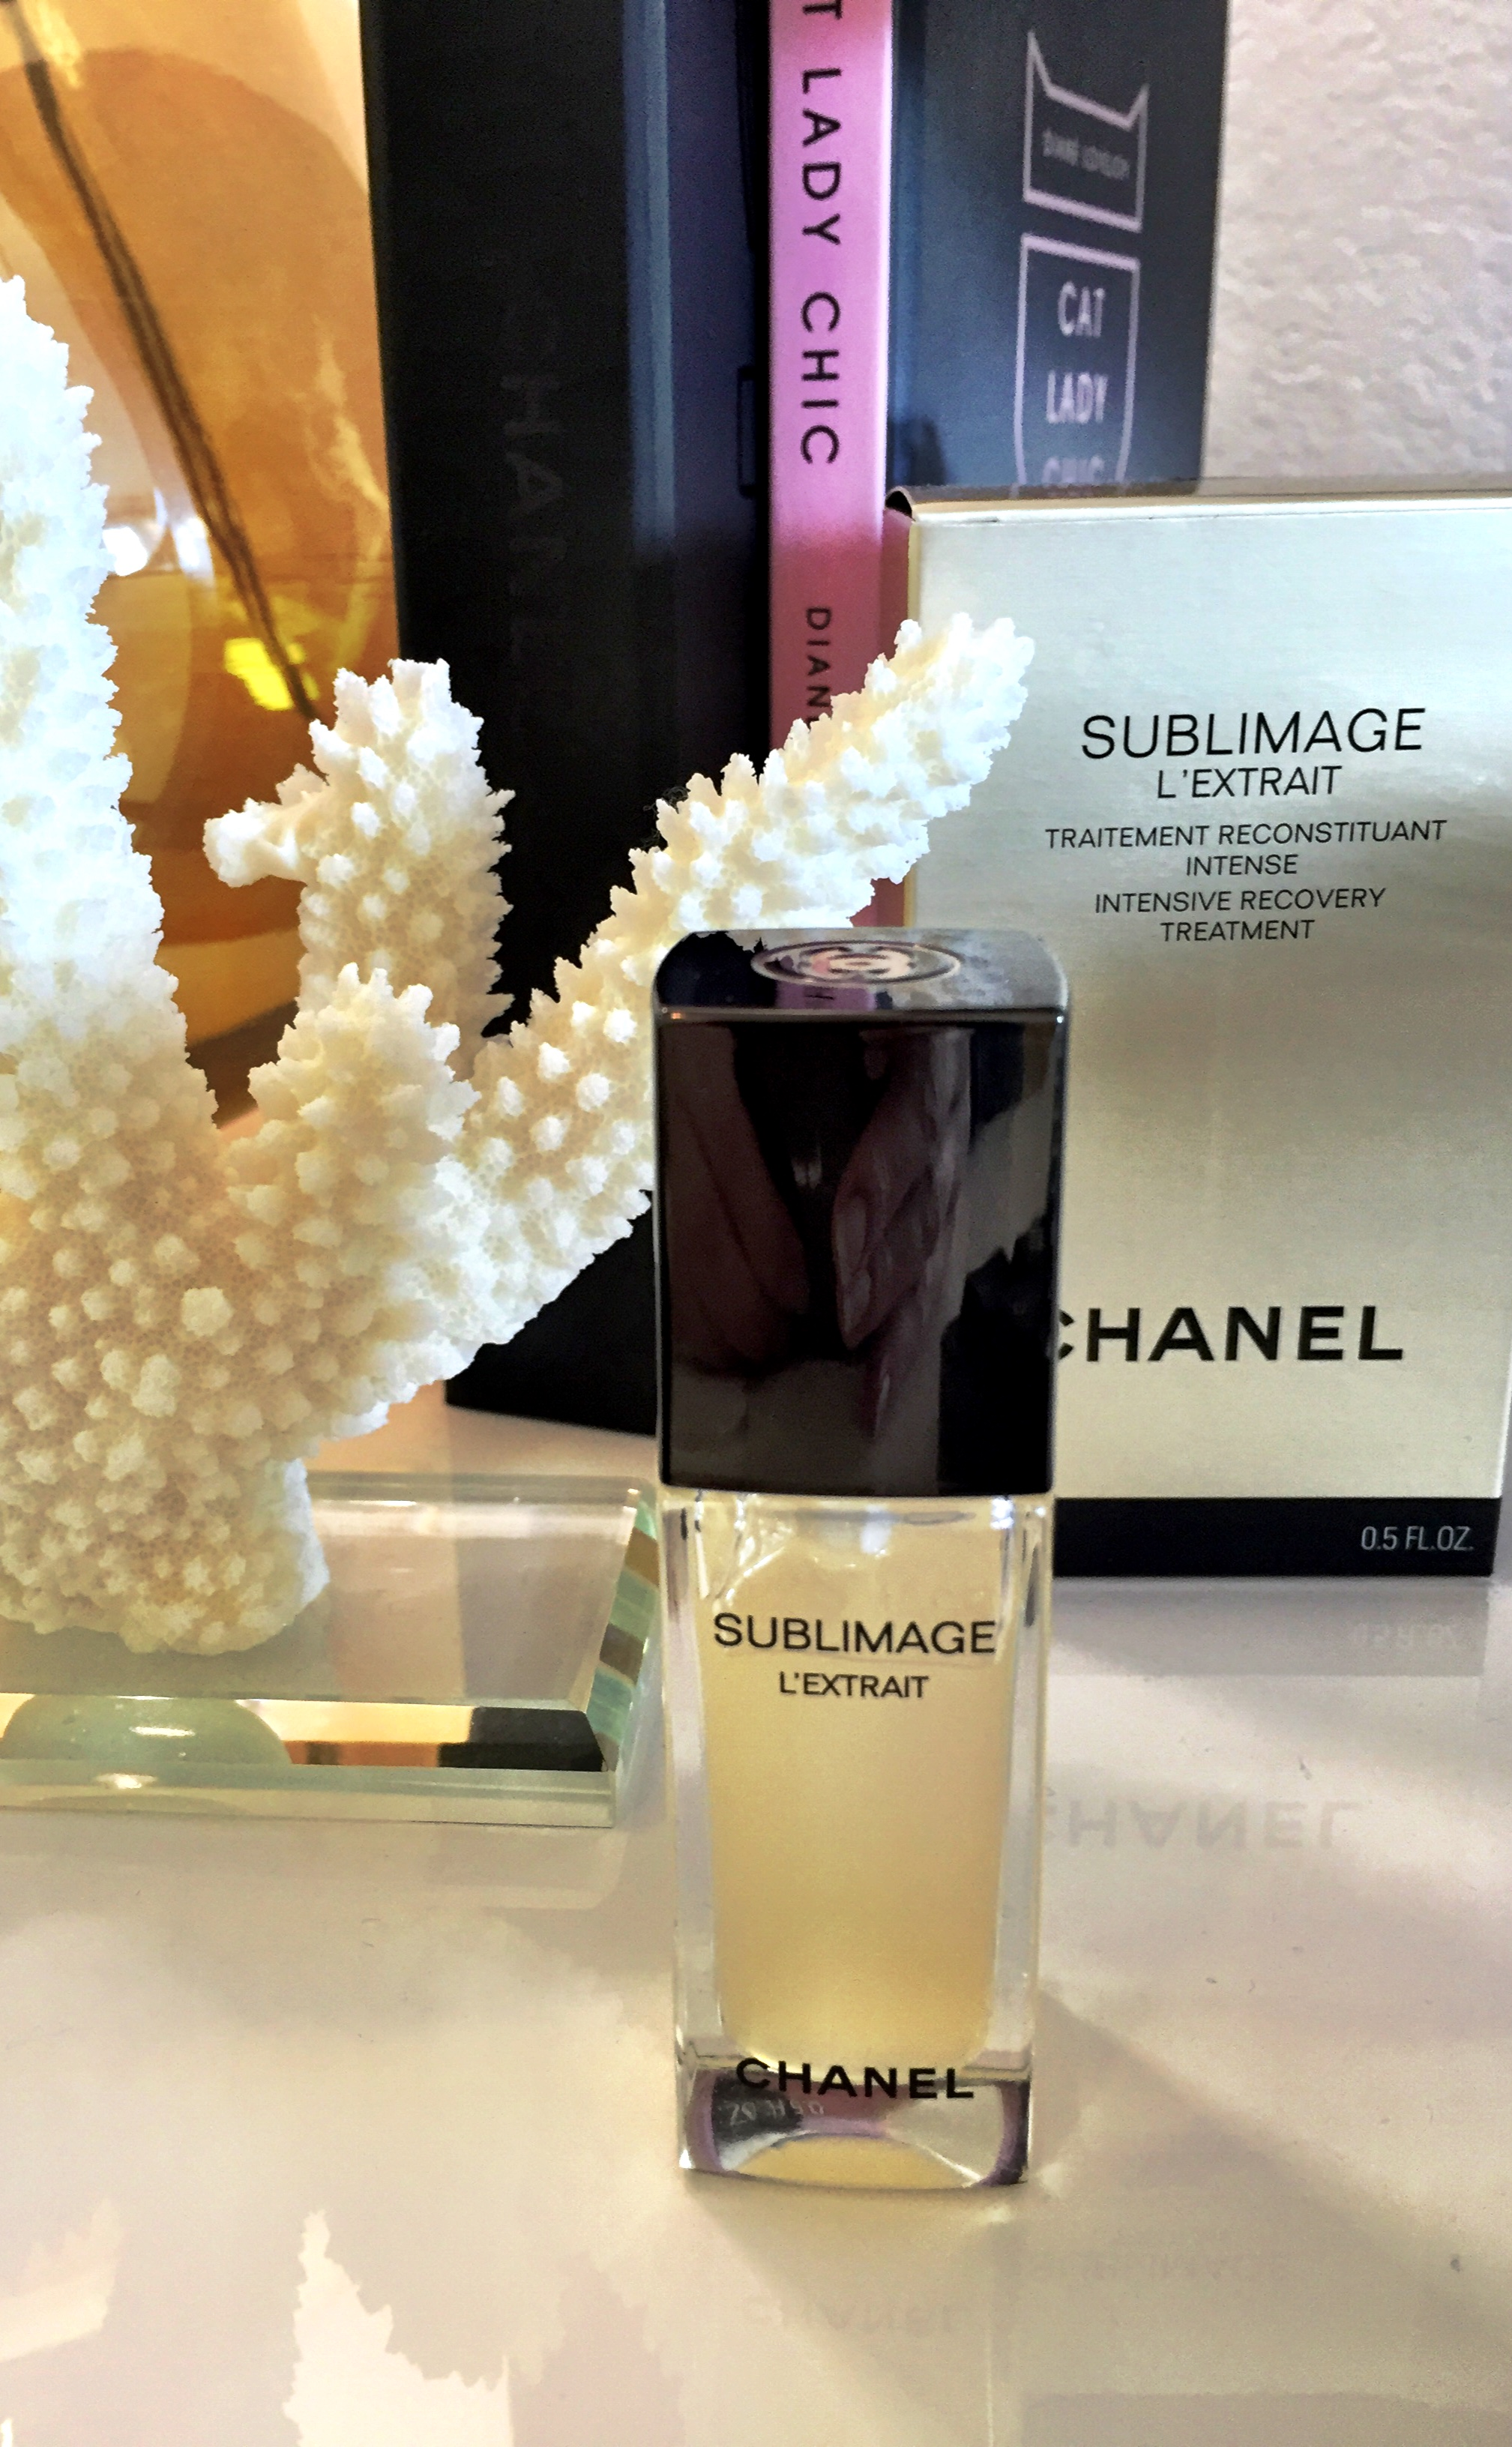 SUBLIMAGE L'Extrait by CHANEL